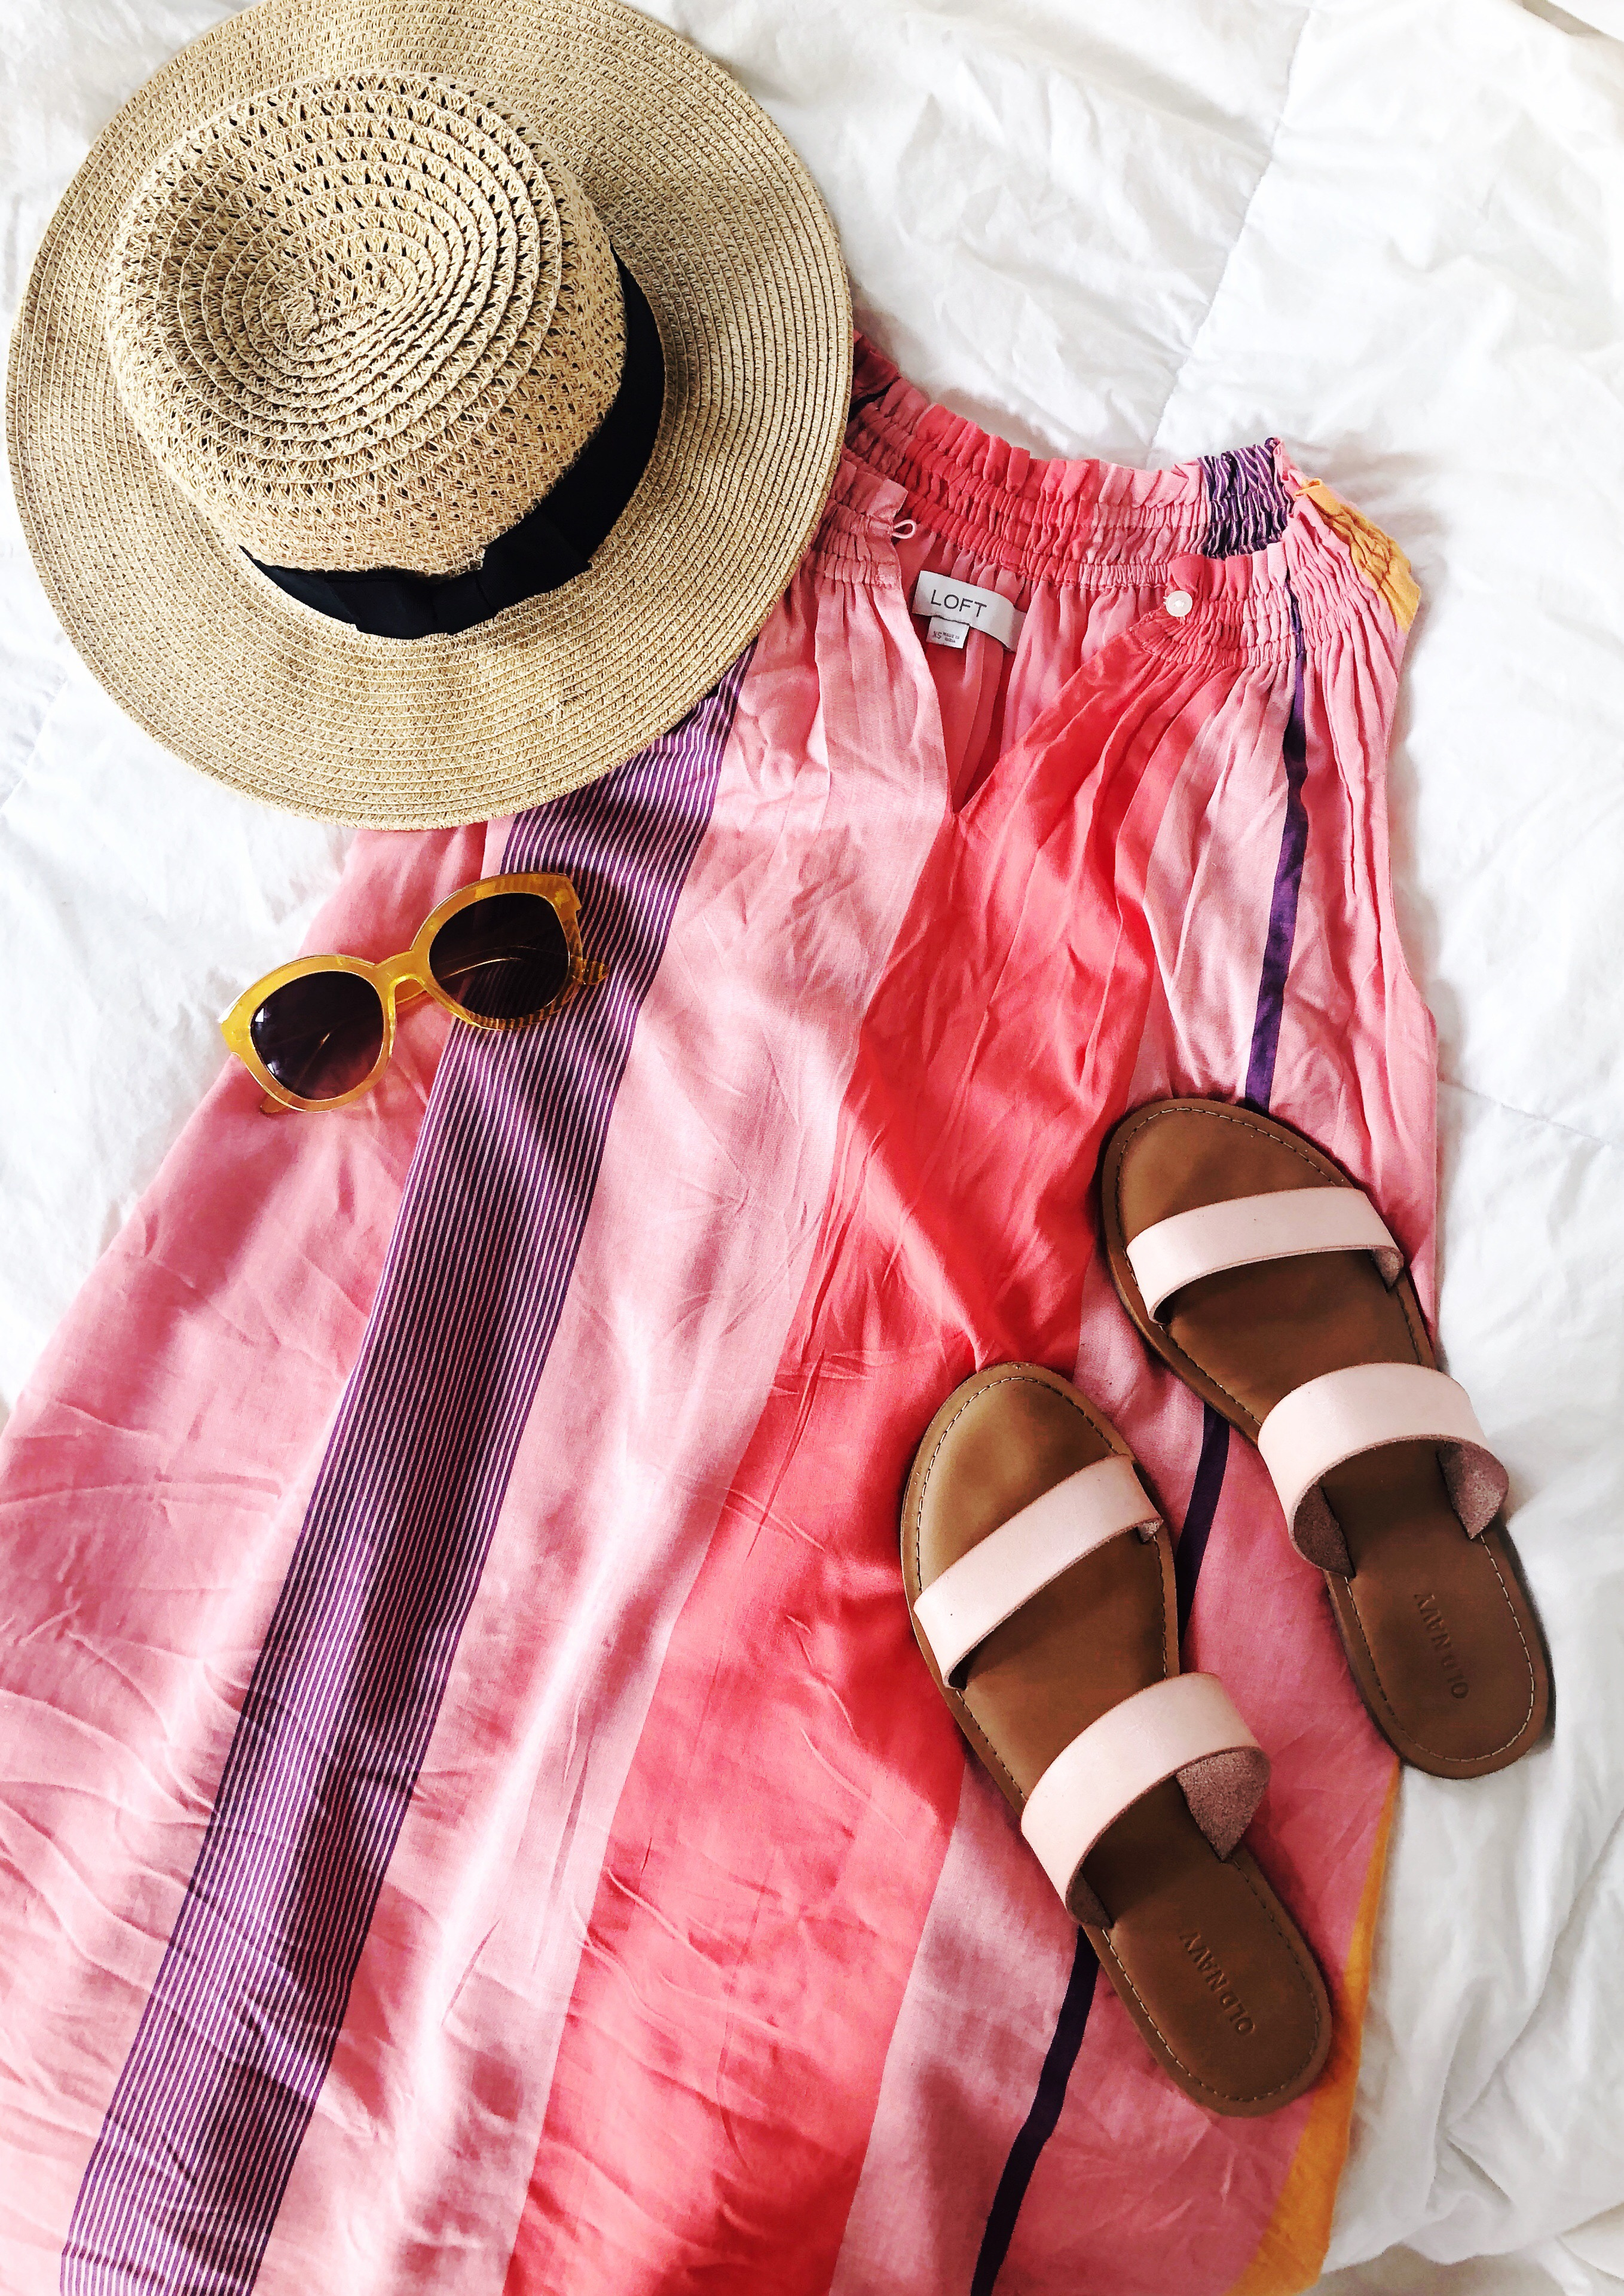 62e48fae14f What to Wear in Oahu, Hawaii: 10 Outfit Ideas - Sunshine Style